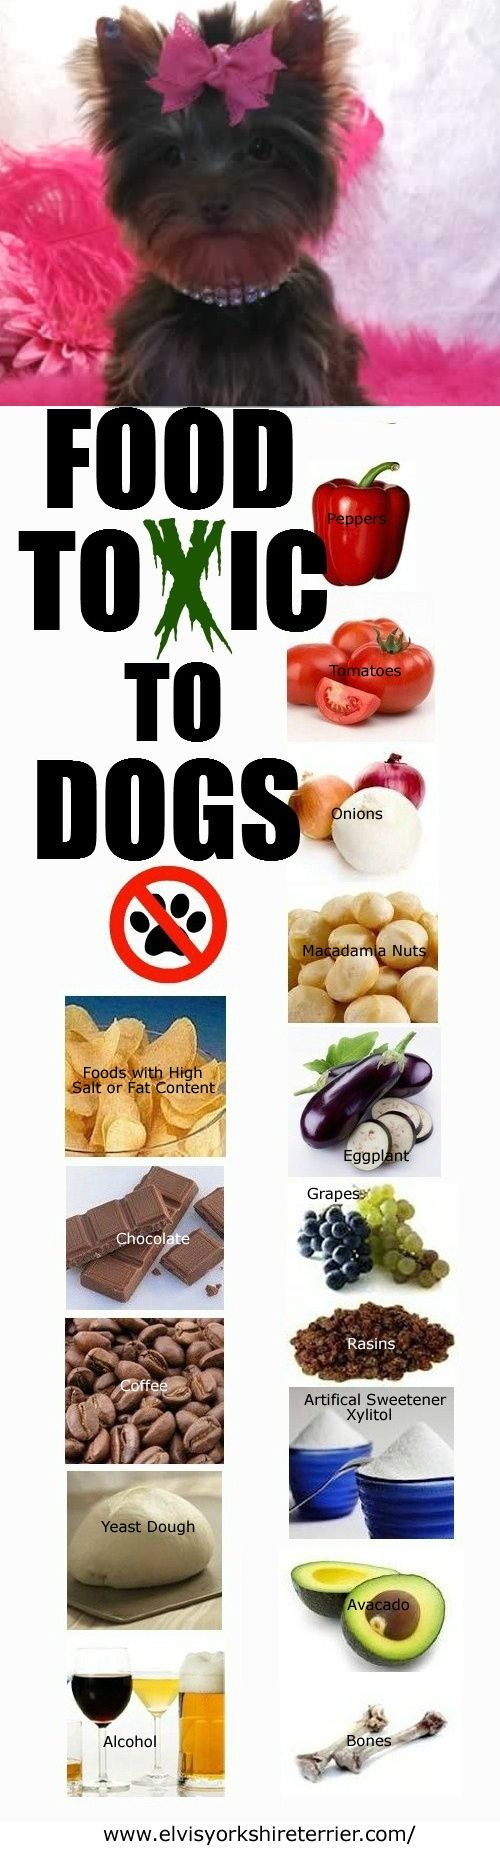 Here are some foods that ar